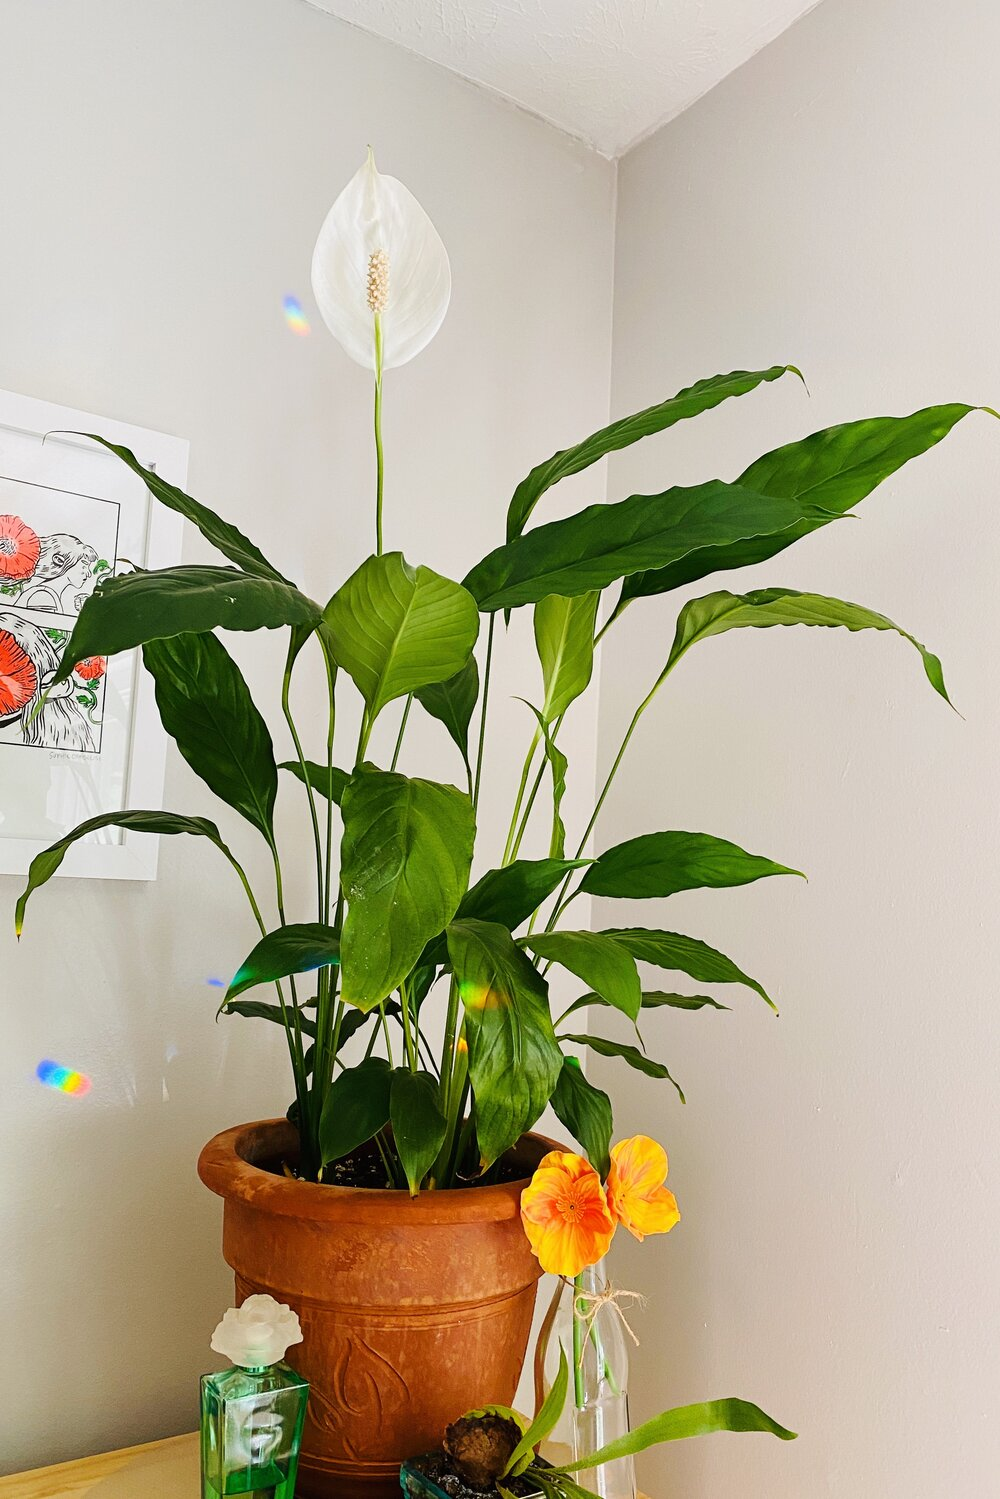 Lauren's photo submission of the peace lily for the Greenhouse print series.